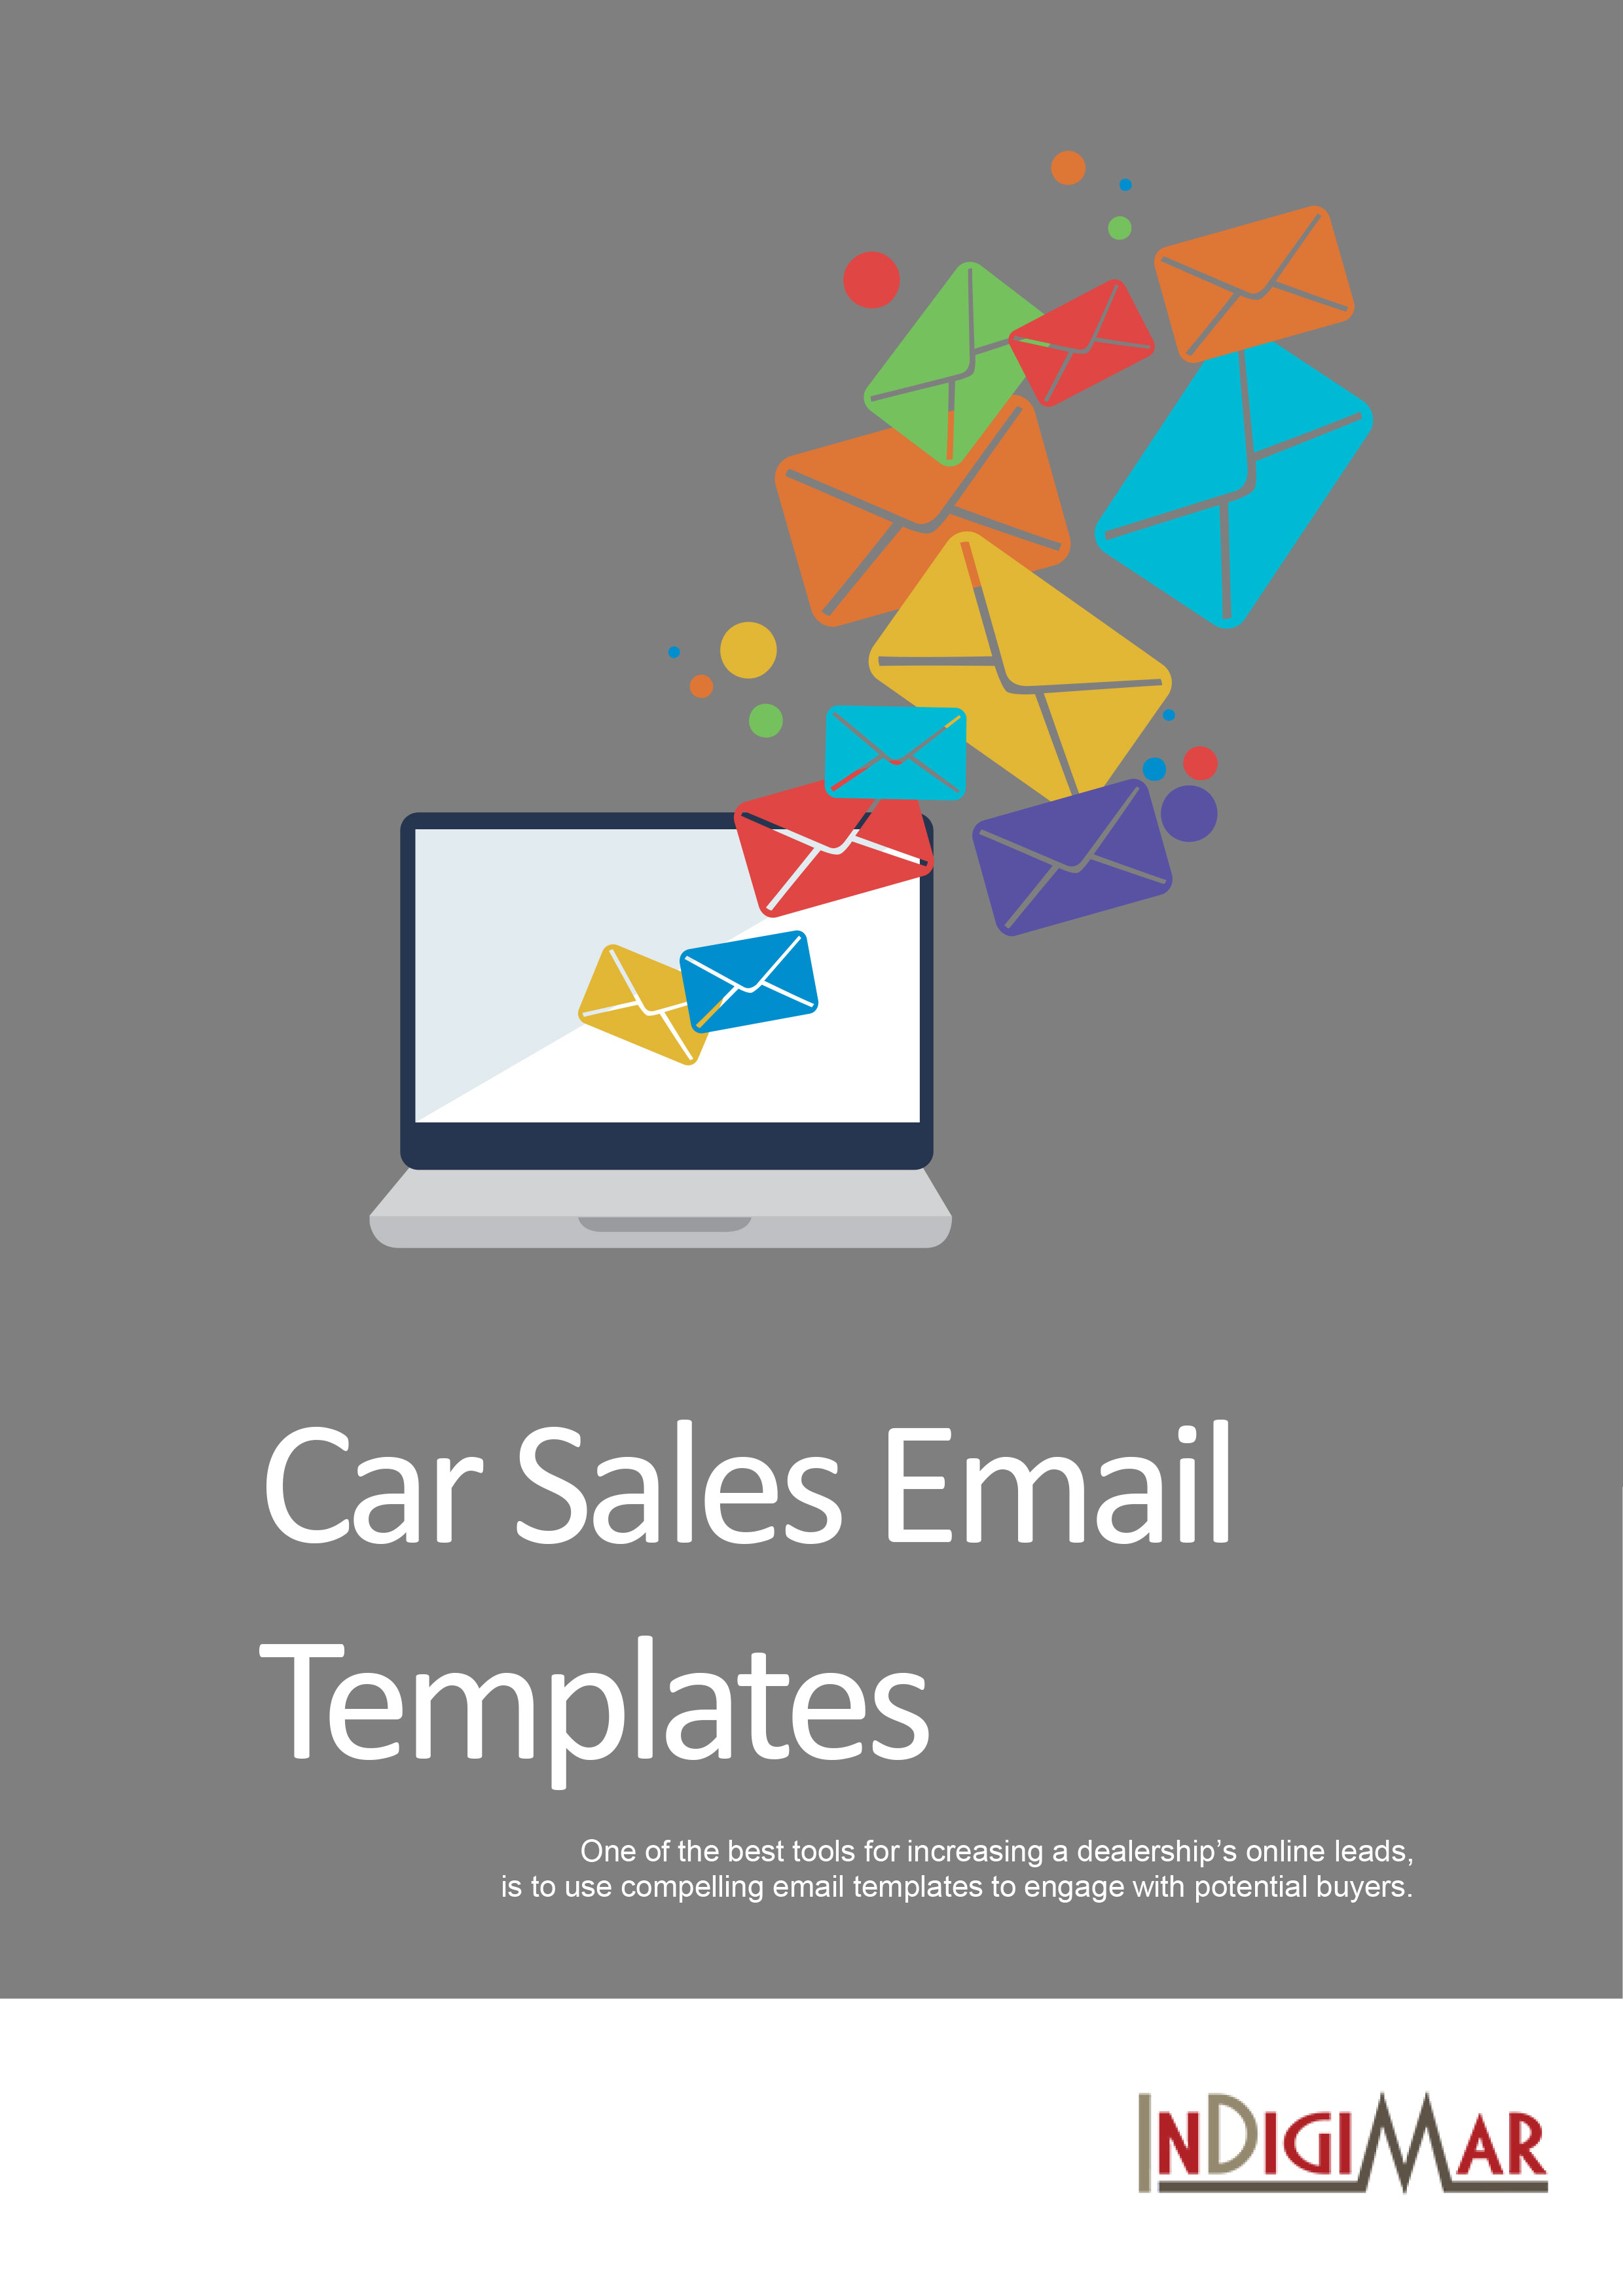 Car Sales Email Templates